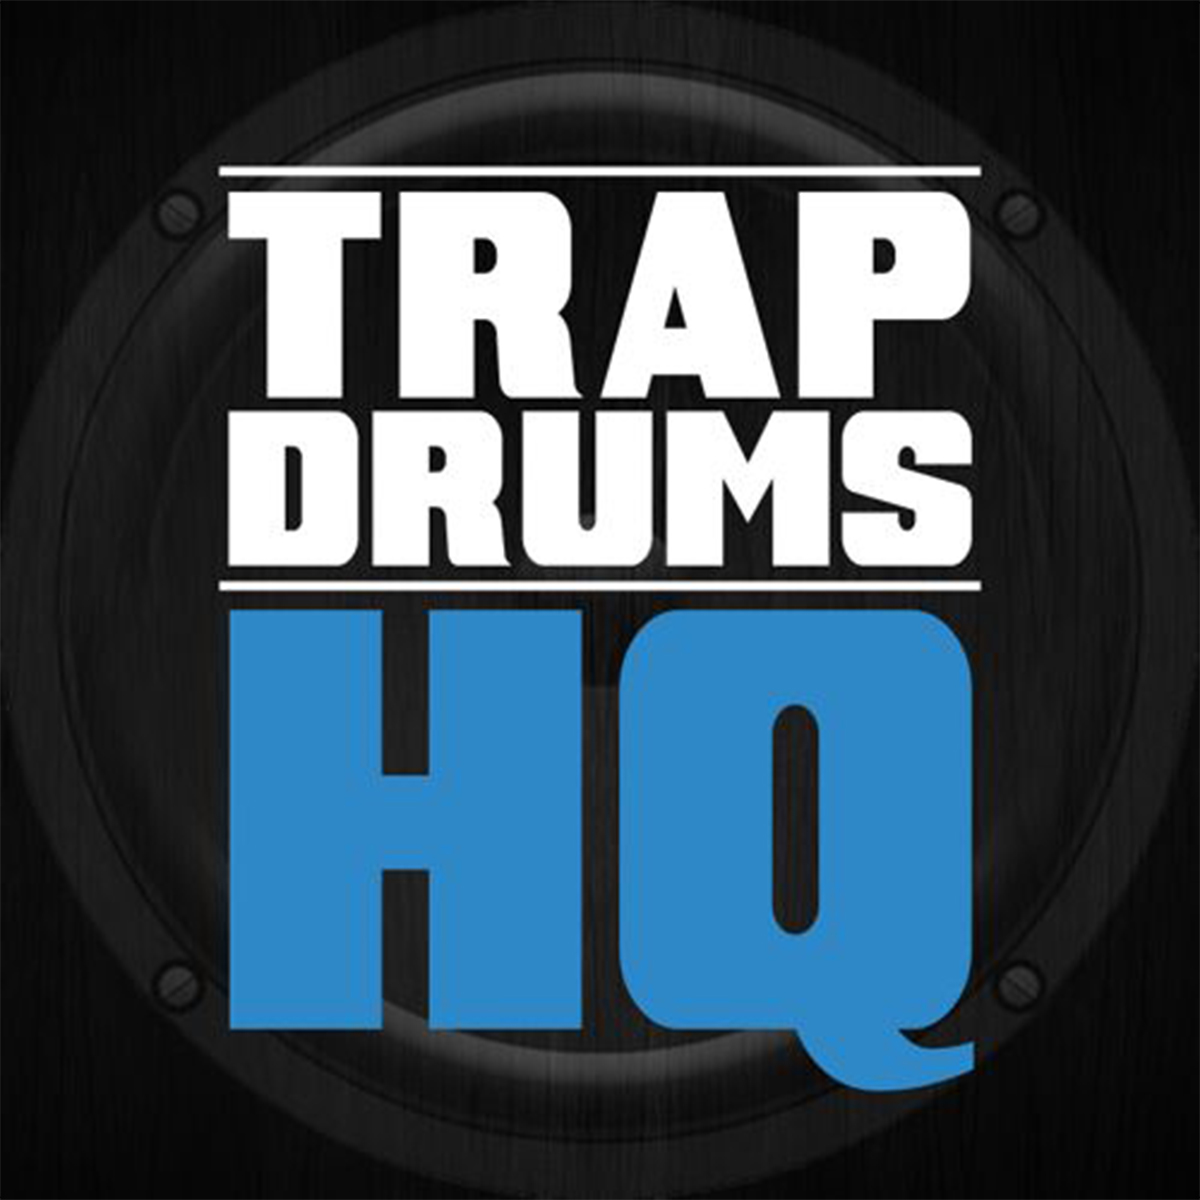 trap-drums-hq-logo